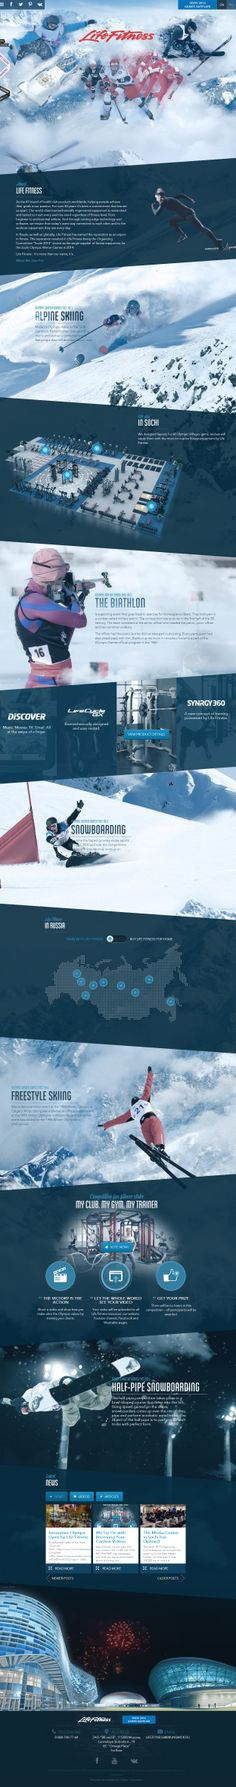 Winner 27 September 2013 Life Fitness at Sochi 2014 by Green Chameleon. A one page promotional website for Life Fitness and their involvement at Sochi Web Design Awards, Web Ui Design, Best Web Design, Page Design, Branding Design, Webdesign Layouts, Responsive Layout, Webdesign Inspiration, Website Design Inspiration